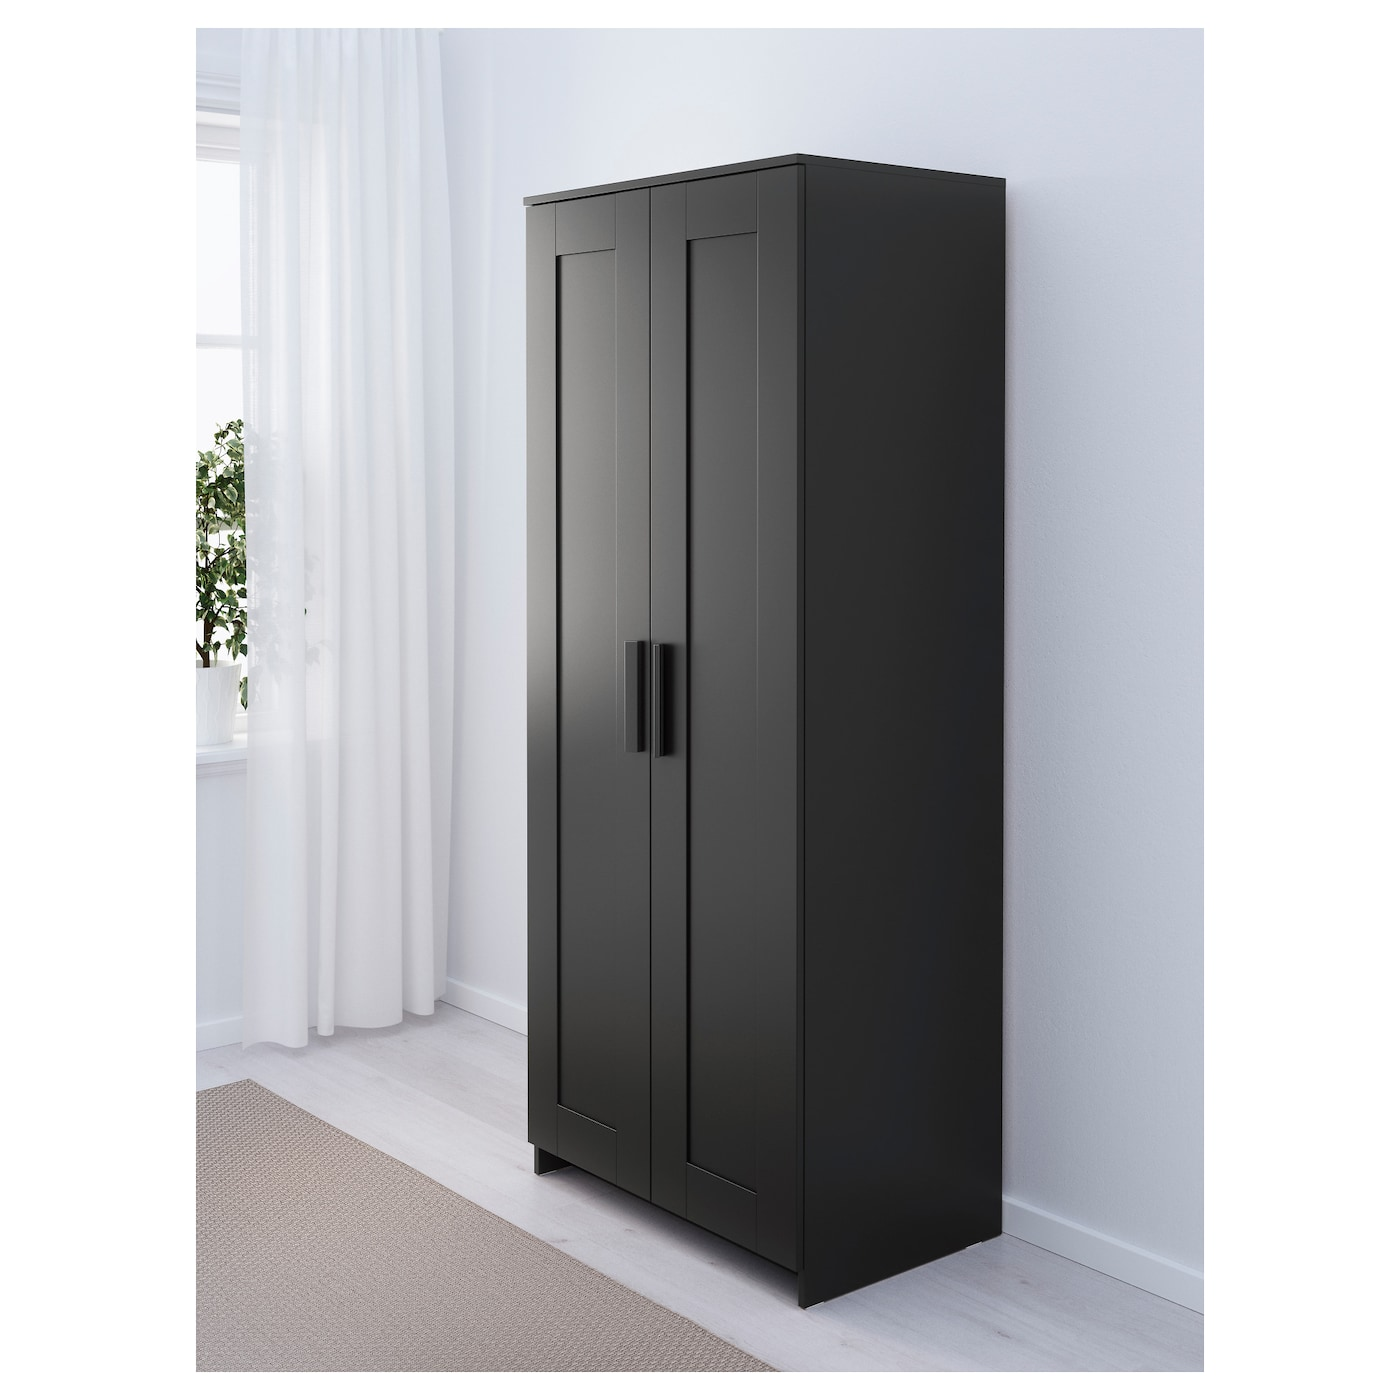 brimnes wardrobe with 2 doors black 78x190 cm ikea. Black Bedroom Furniture Sets. Home Design Ideas